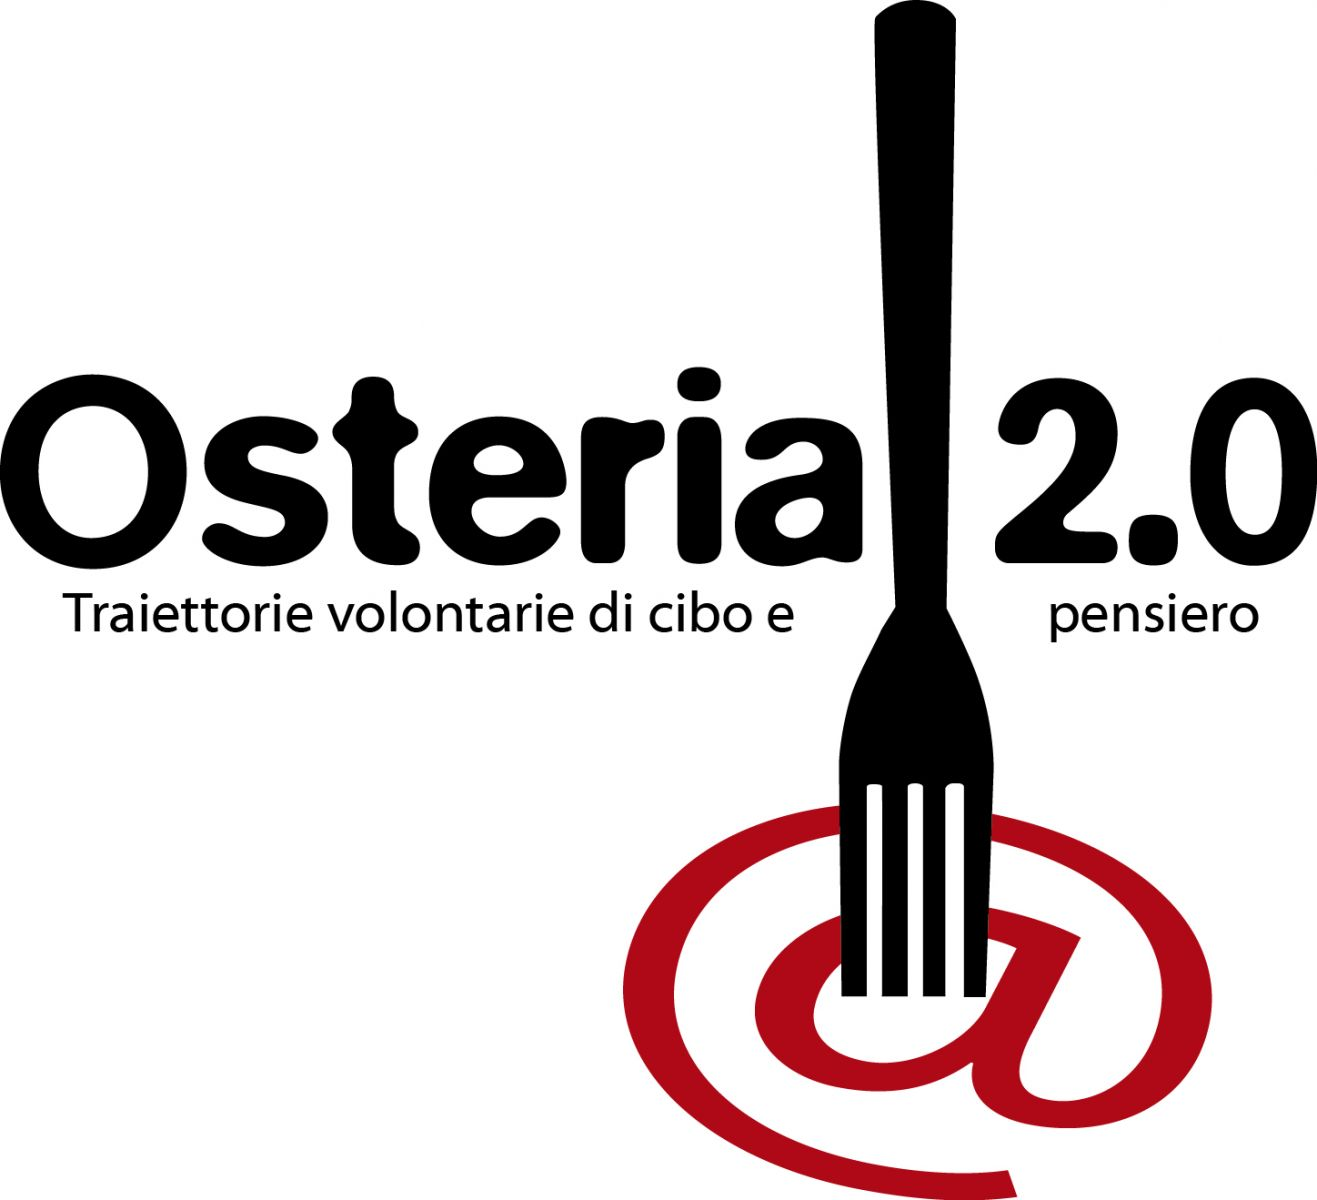 LAUTUNNO DI OSTERIA 2.0 TRAIETTORIE VOLONTARIE DI CIBO E PENSIERO